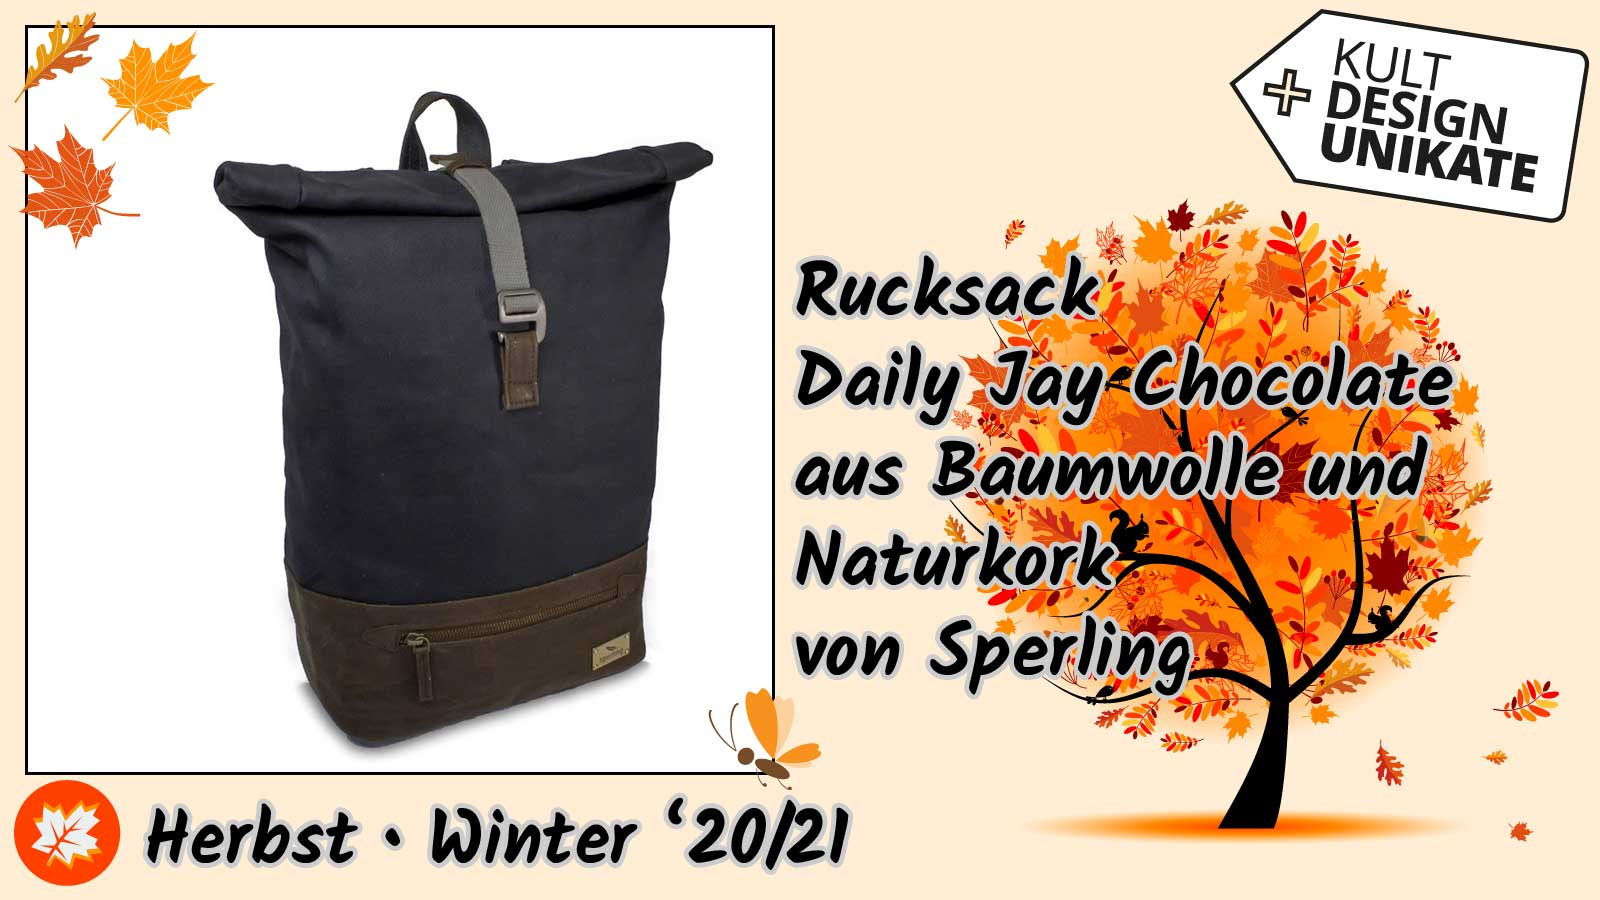 Sperling-Rucksack-Daily-Jay-Chocolate